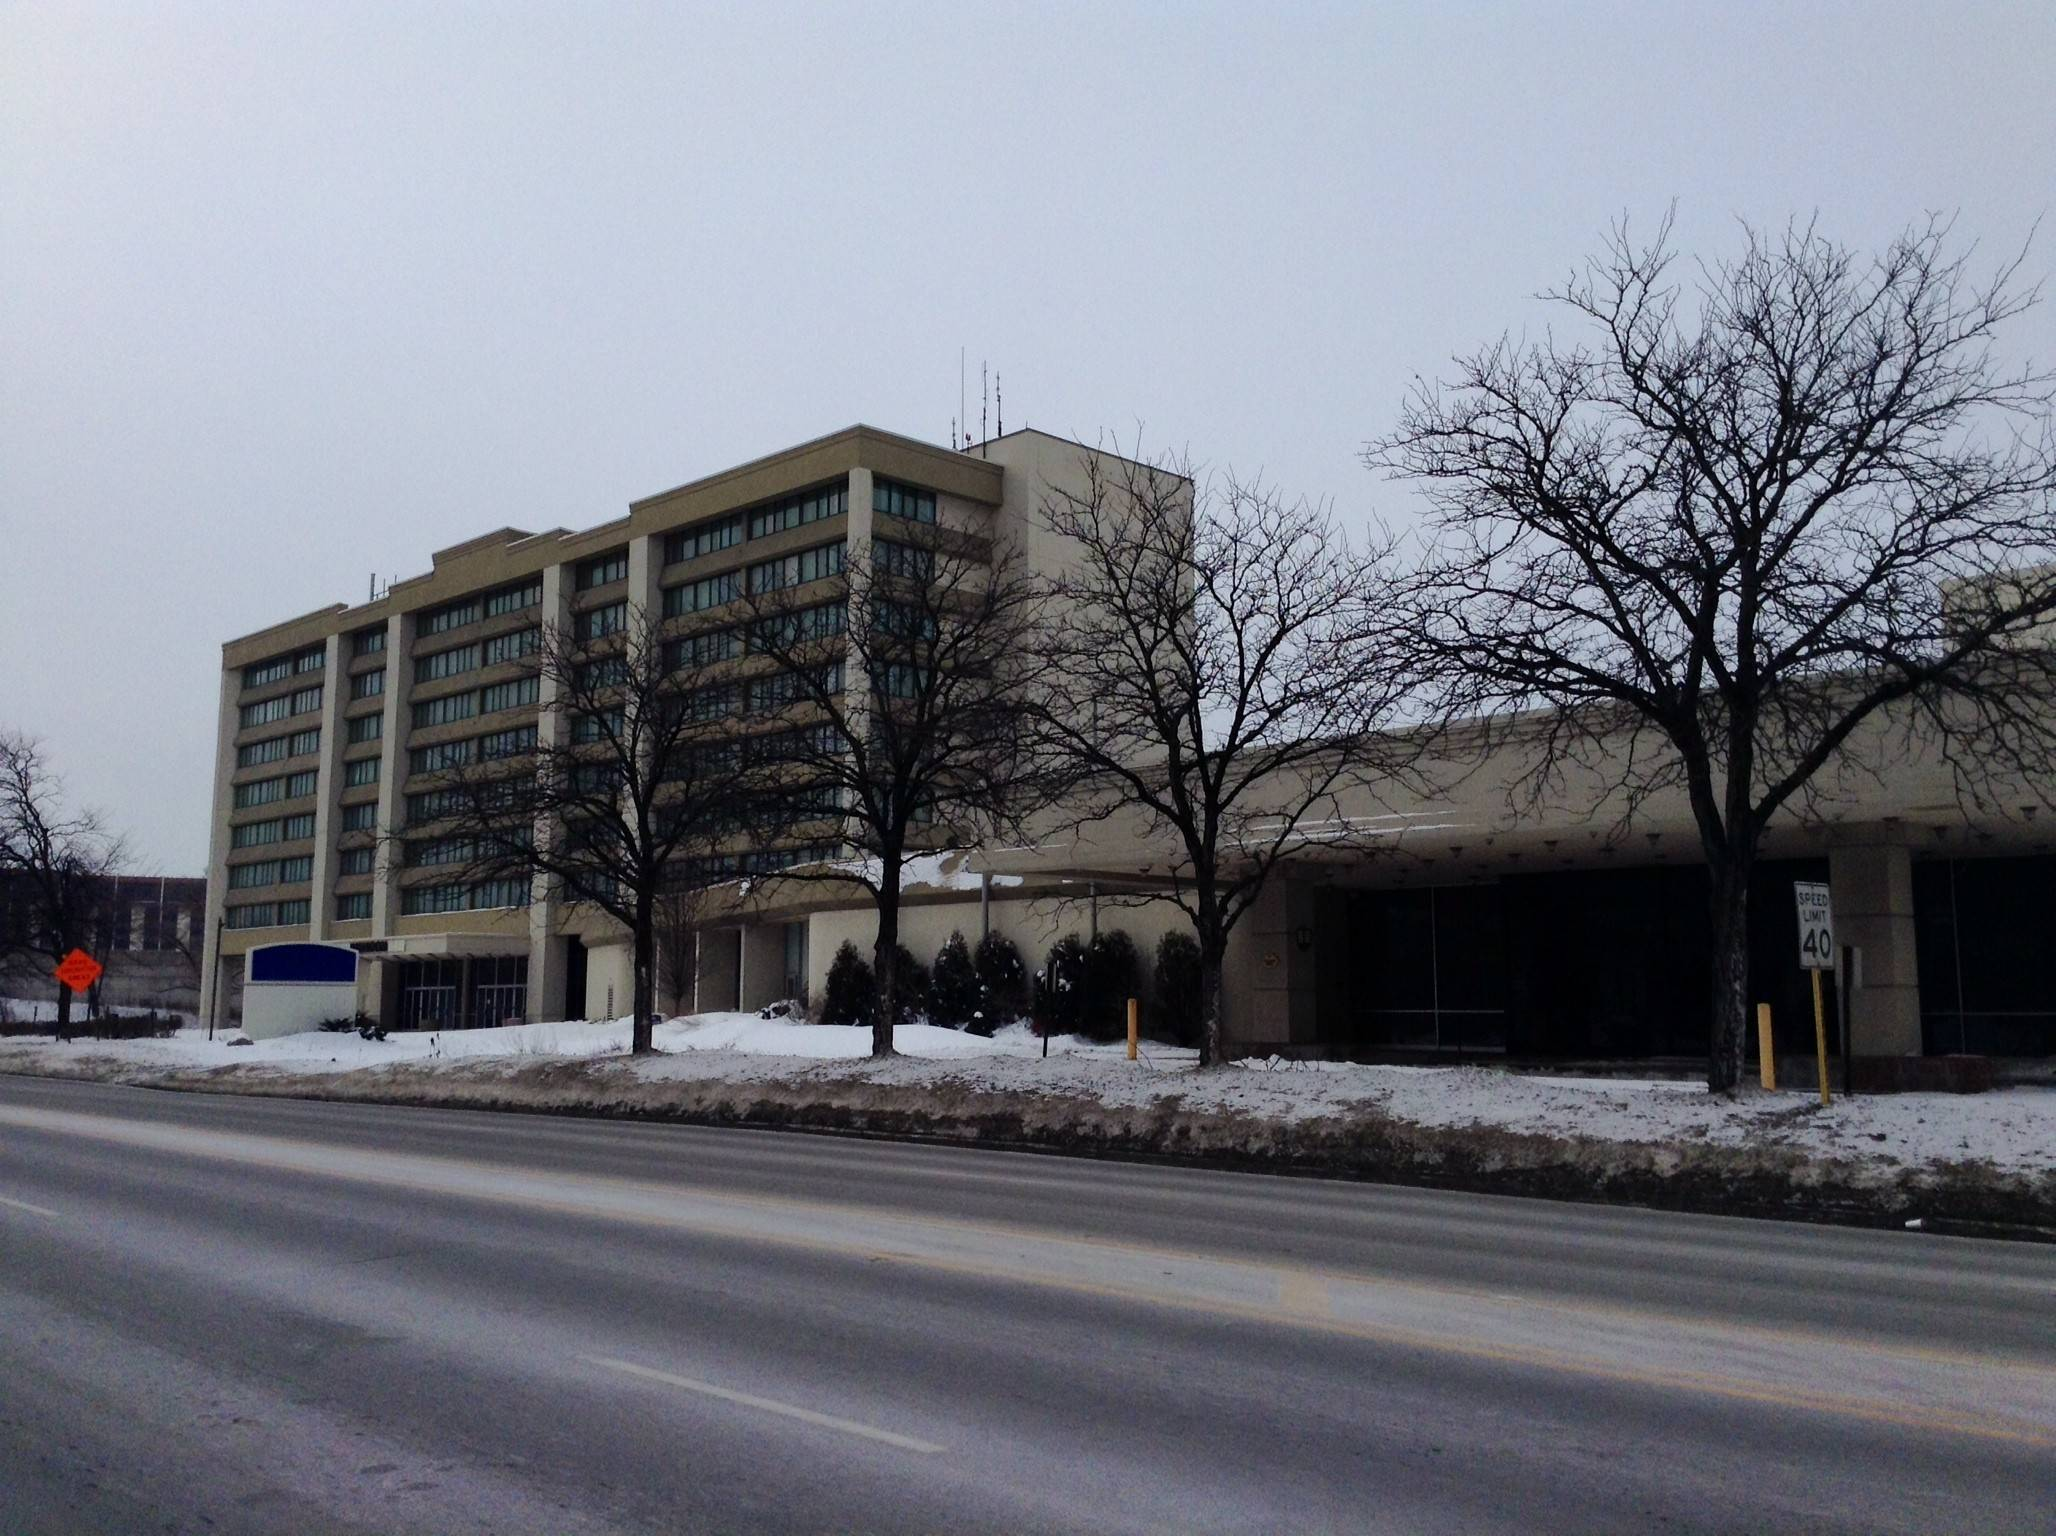 The former Wyndham O'Hare Hotel at 6810 N. Mannheim Road in Rosemont has been closed since Jan. 1, 2010. It is included in the boundaries of a new tax increment financing district approved by the village board this week.